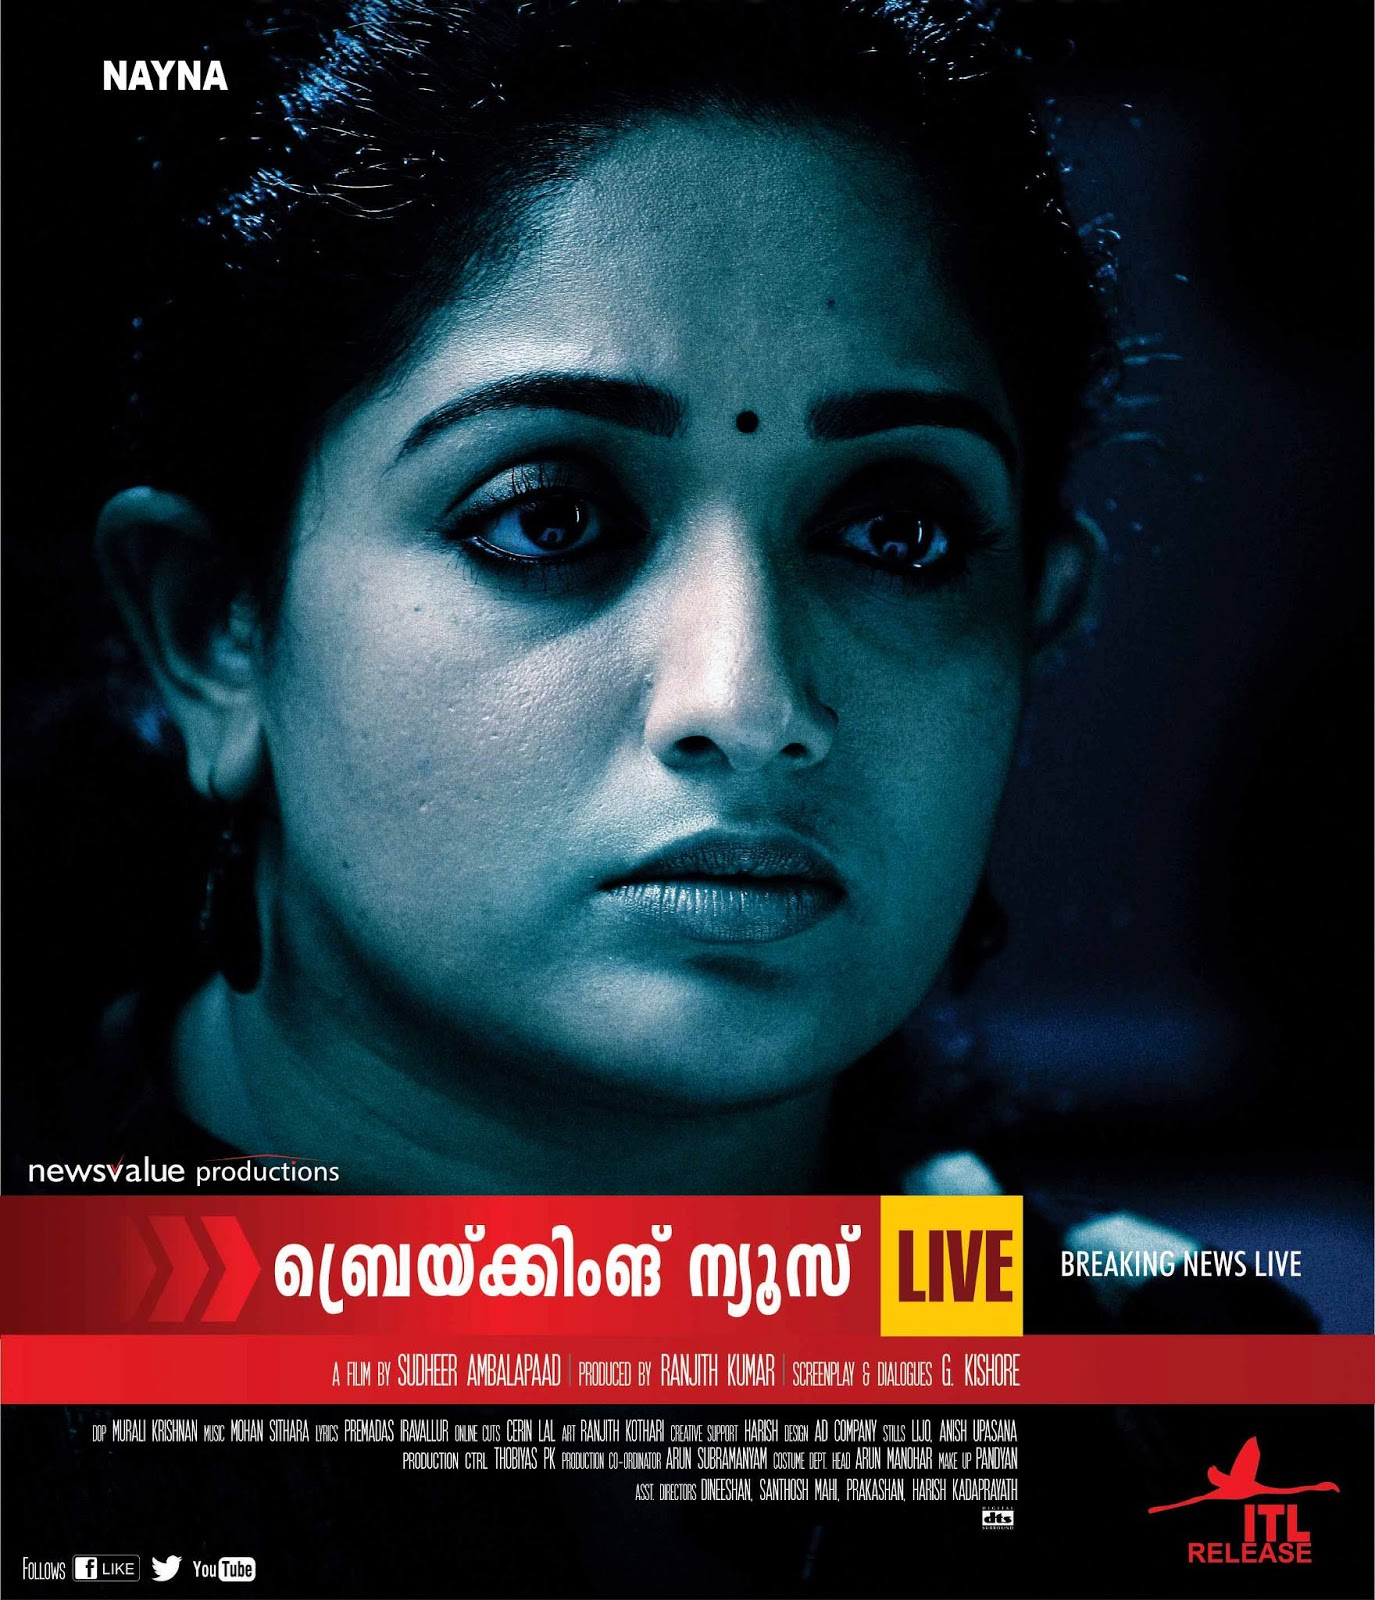 Breaking News: Breaking News Live(Malayalam Movie Song Download